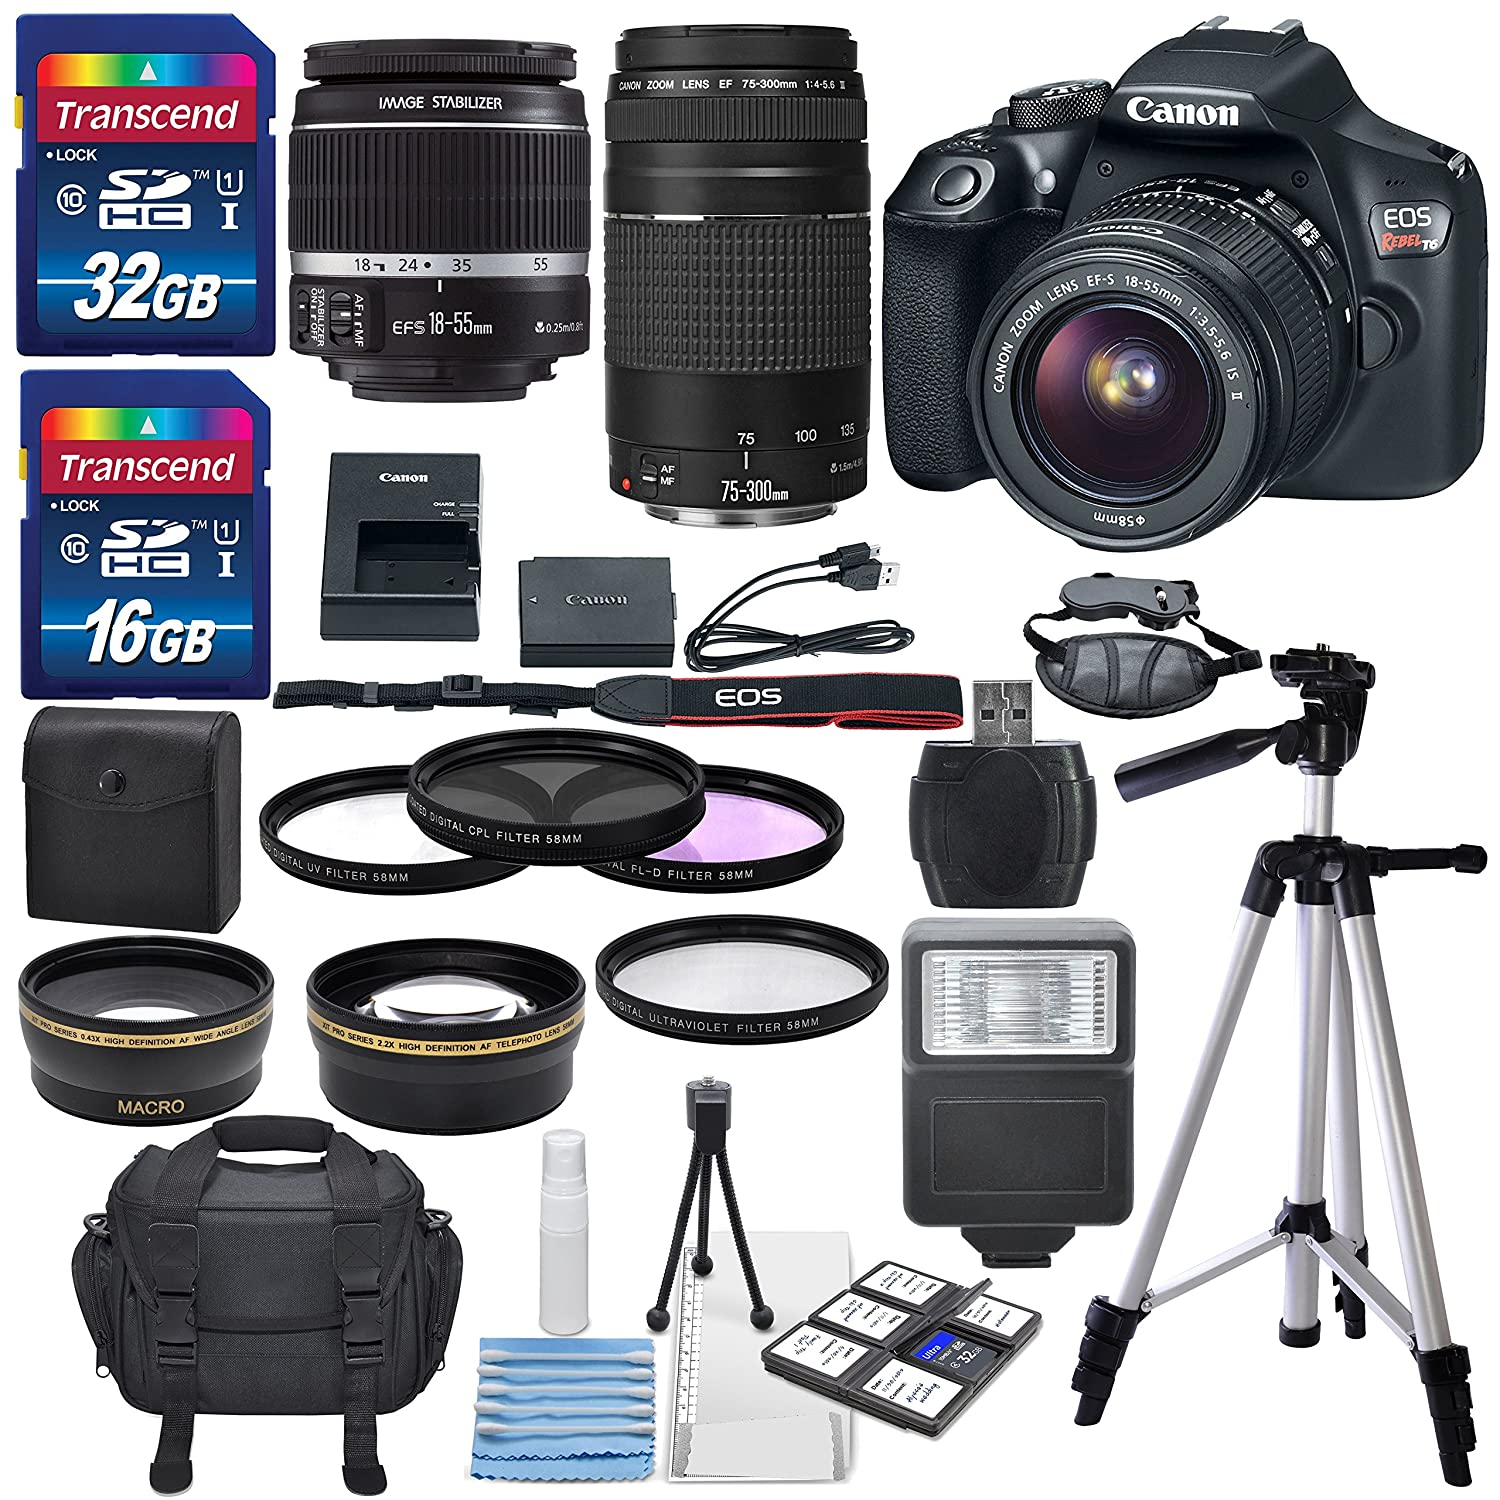 Canon-EOS-Rebel-T6-DSLR-Camera-with-EF-S-18-55mm-f-3-5-5-6-IS-II-Lens-EF-75-300mm-f-4-5-6-III-Lens-and-Deluxe-Accessory-Bundle